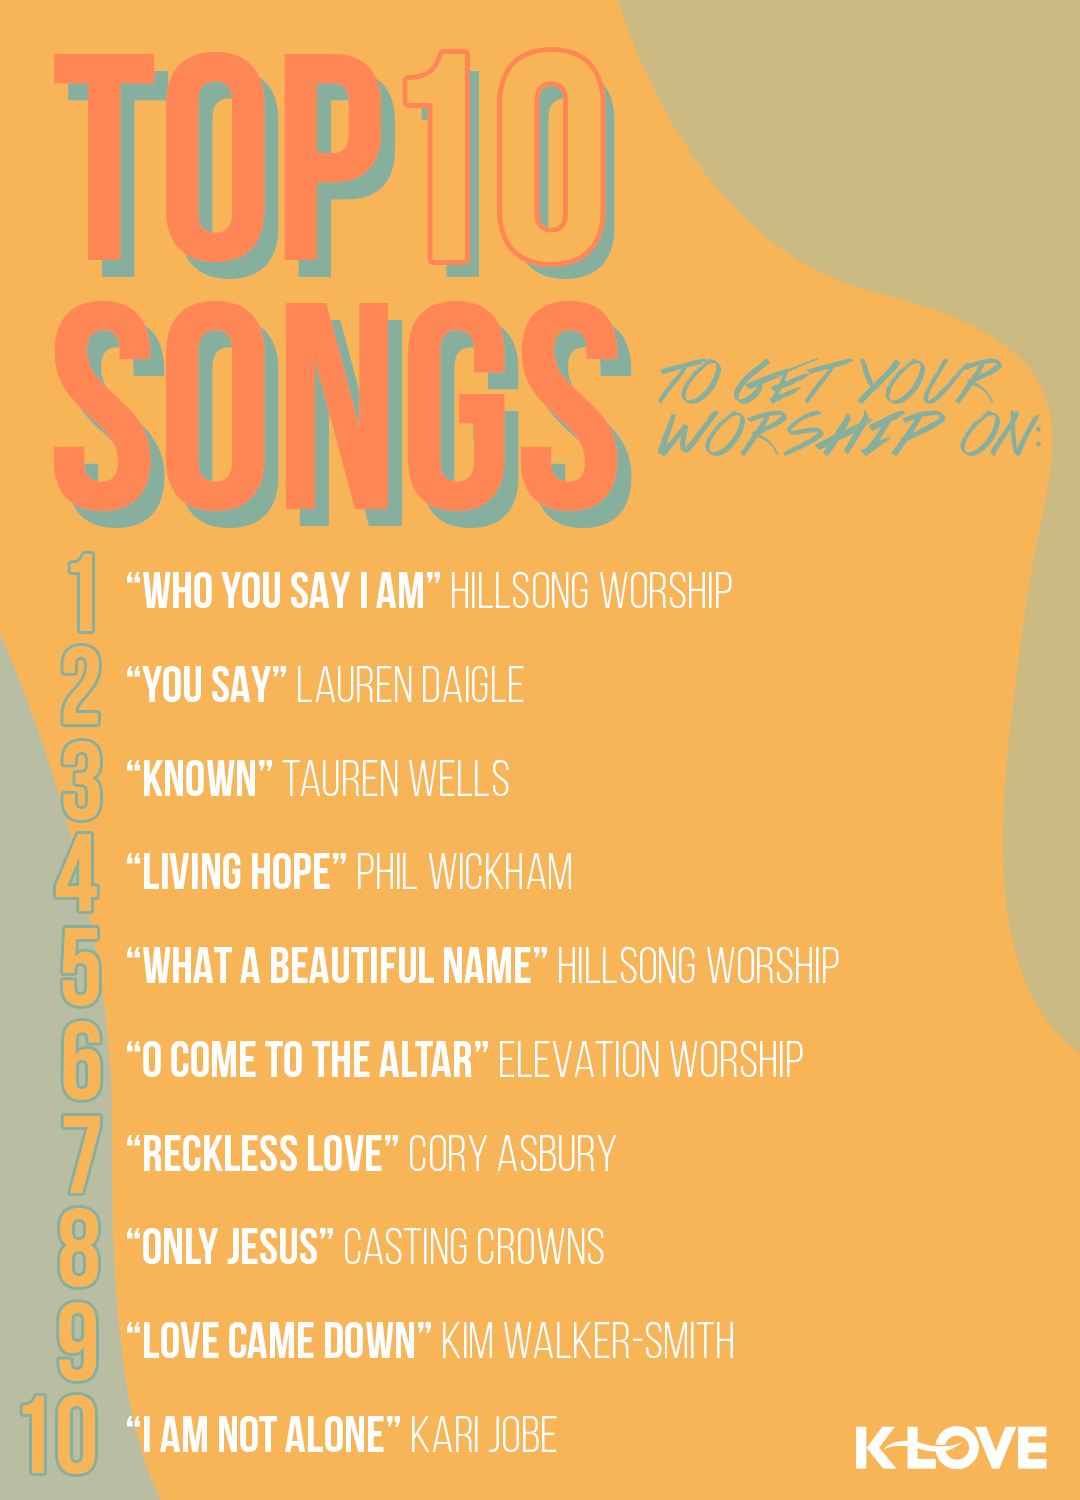 Pin by RC Barker on Christ in 2019 | Best worship songs, Christian